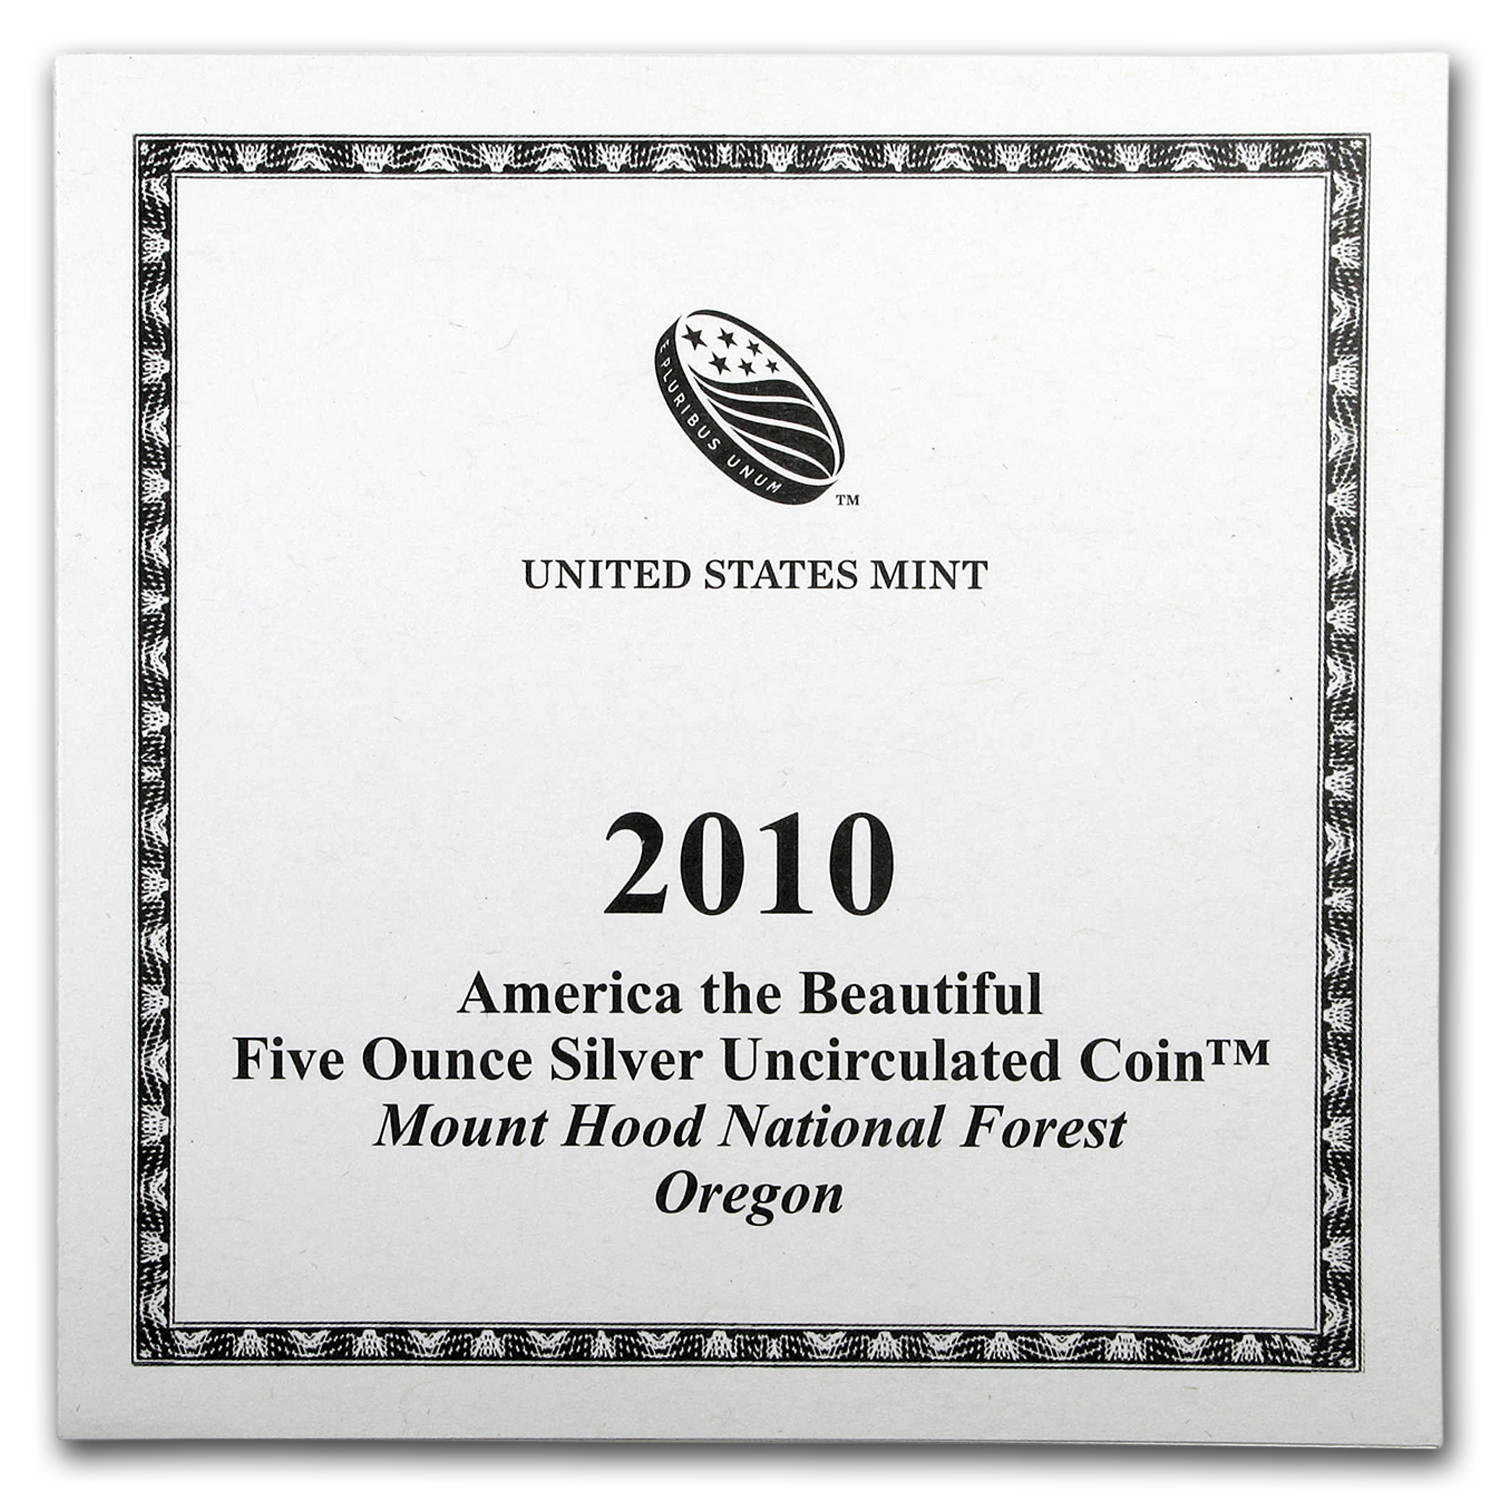 OGP Box & COA - 2010 U.S. Mint 5 oz Silver ATB Coin (Mount Hood)